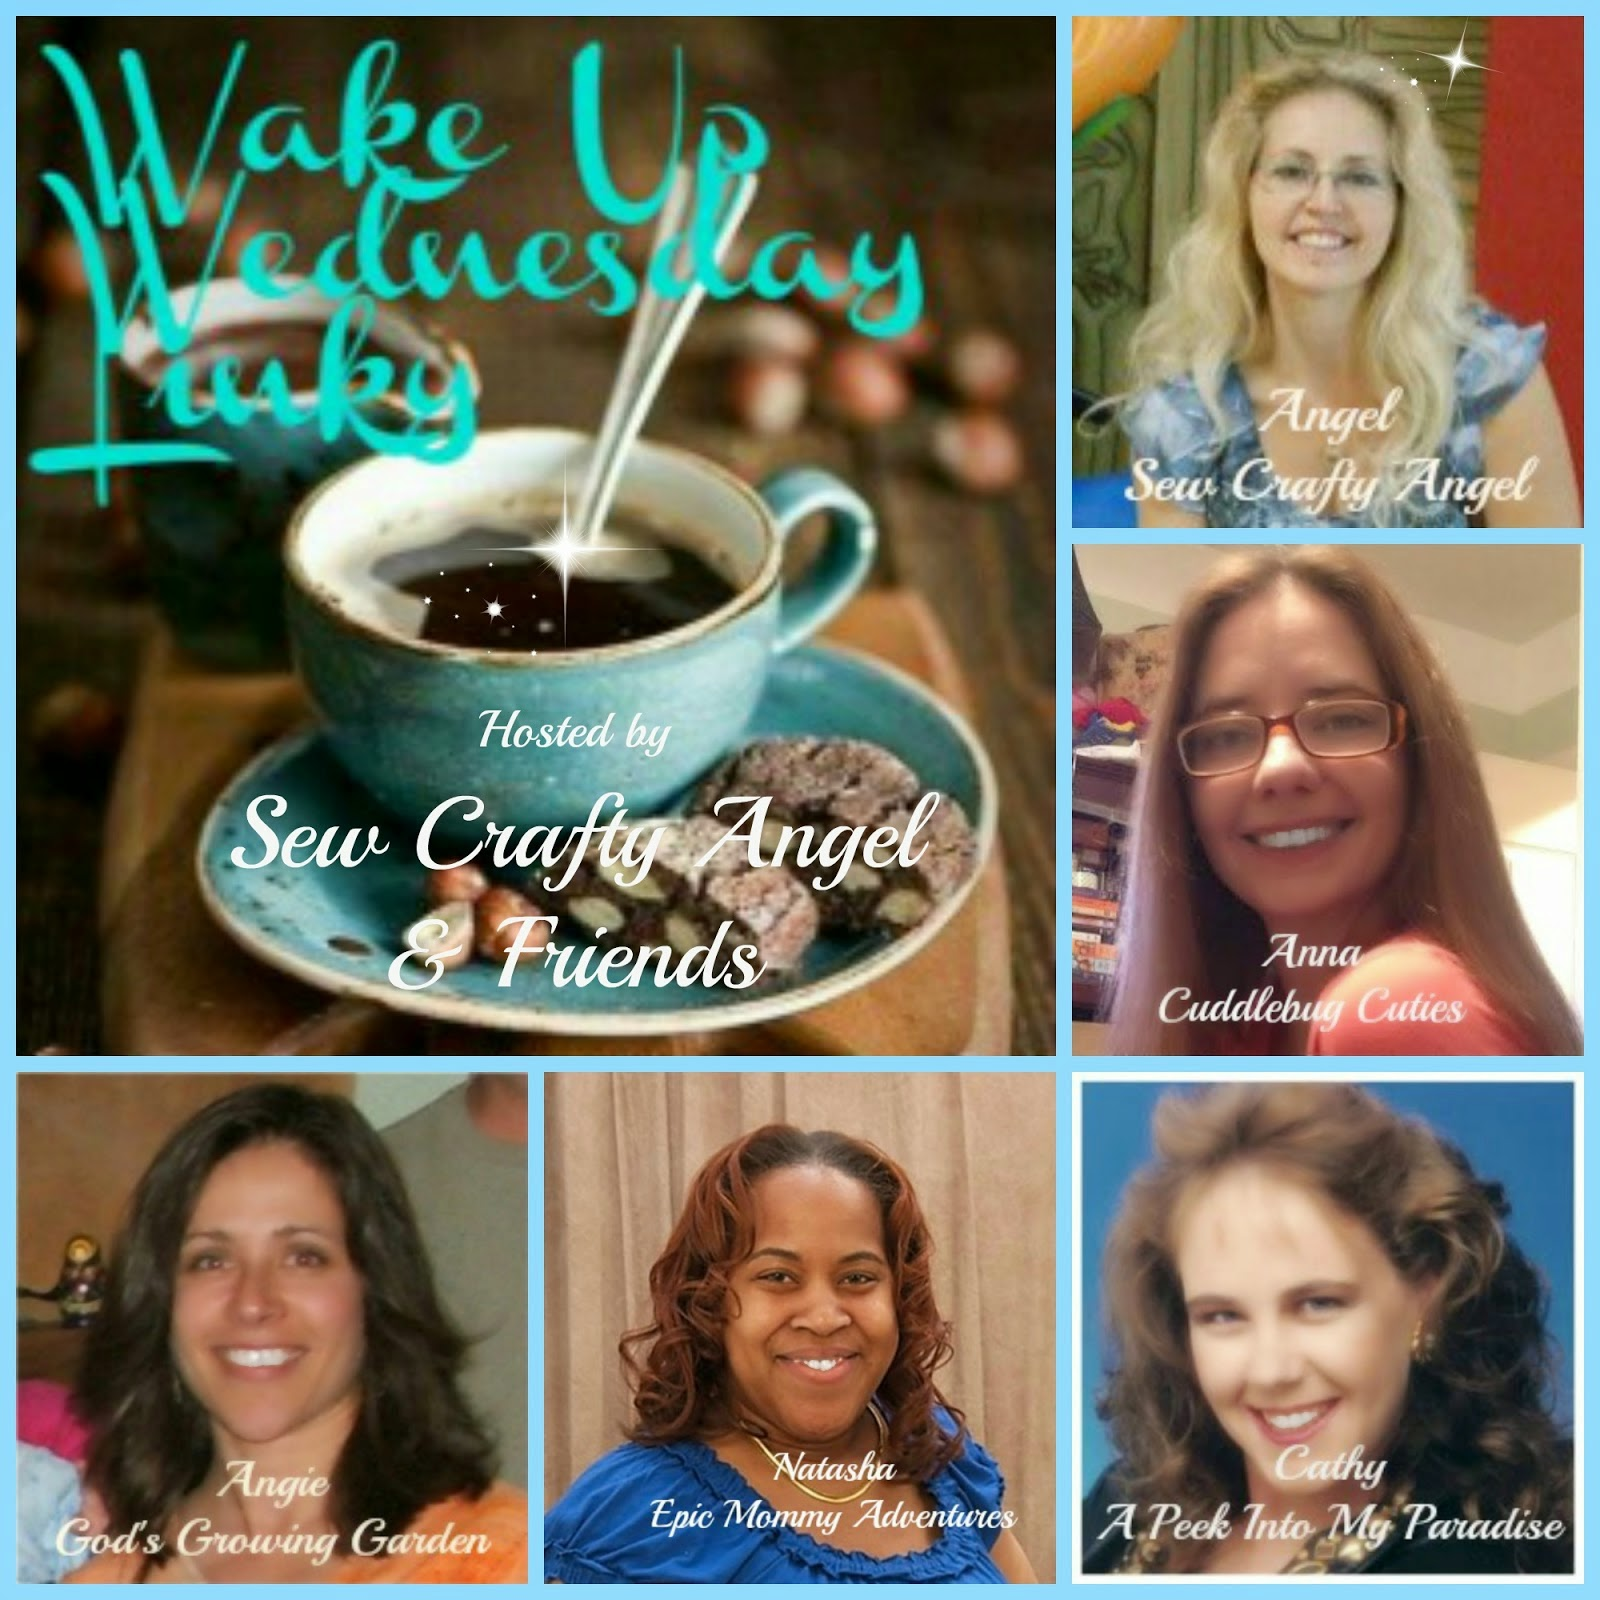 http://sewcraftyangel.blogspot.com/2015/04/wake-up-wednesday-linky-party-65.html